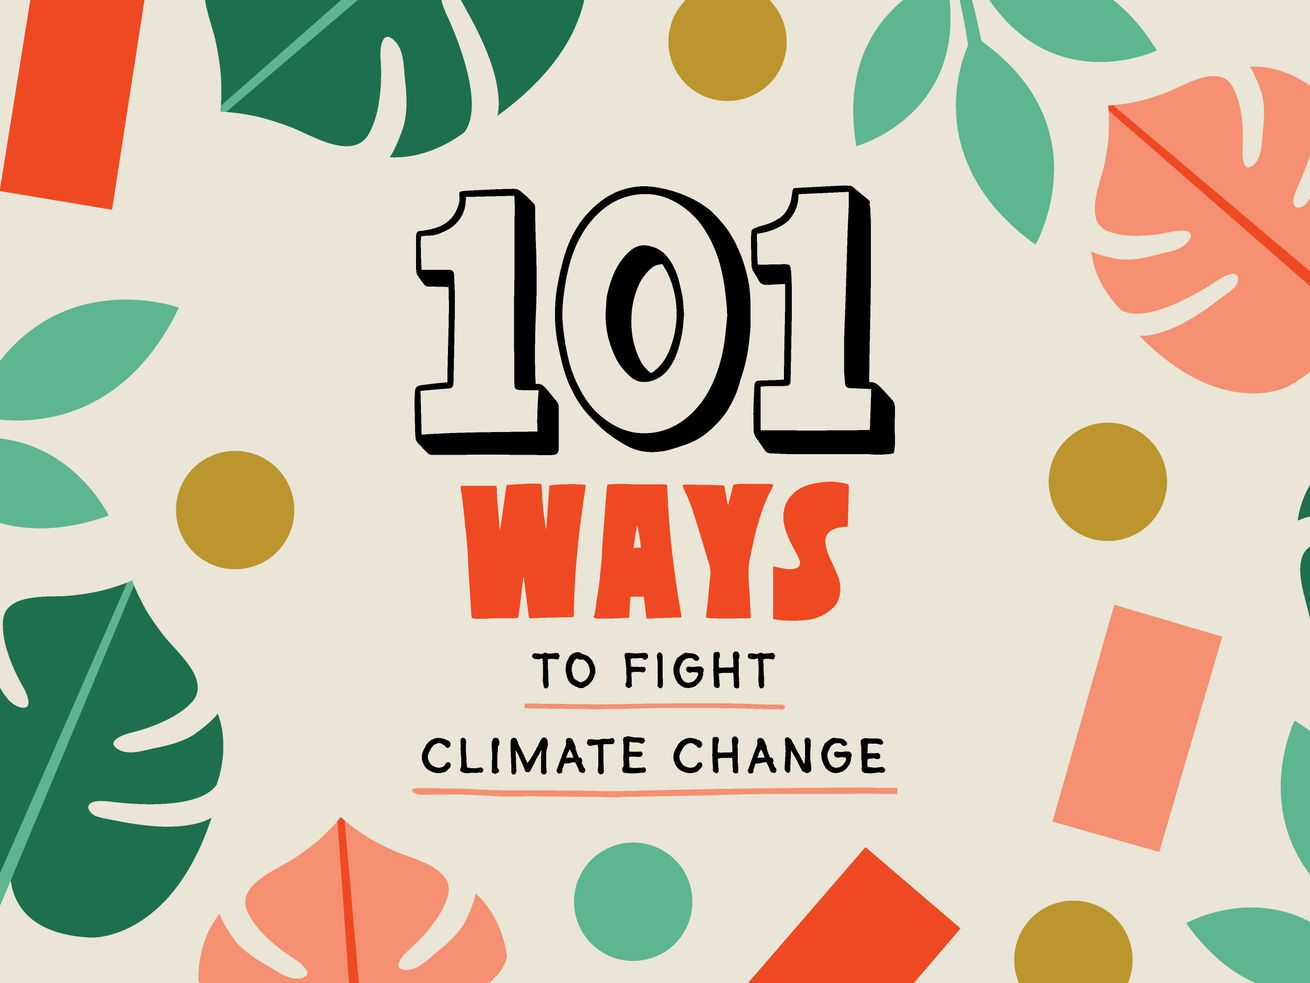 Leaves in various colors on a beige background. In the center are the words: 101 ways to fight climate change. This is an illustration.